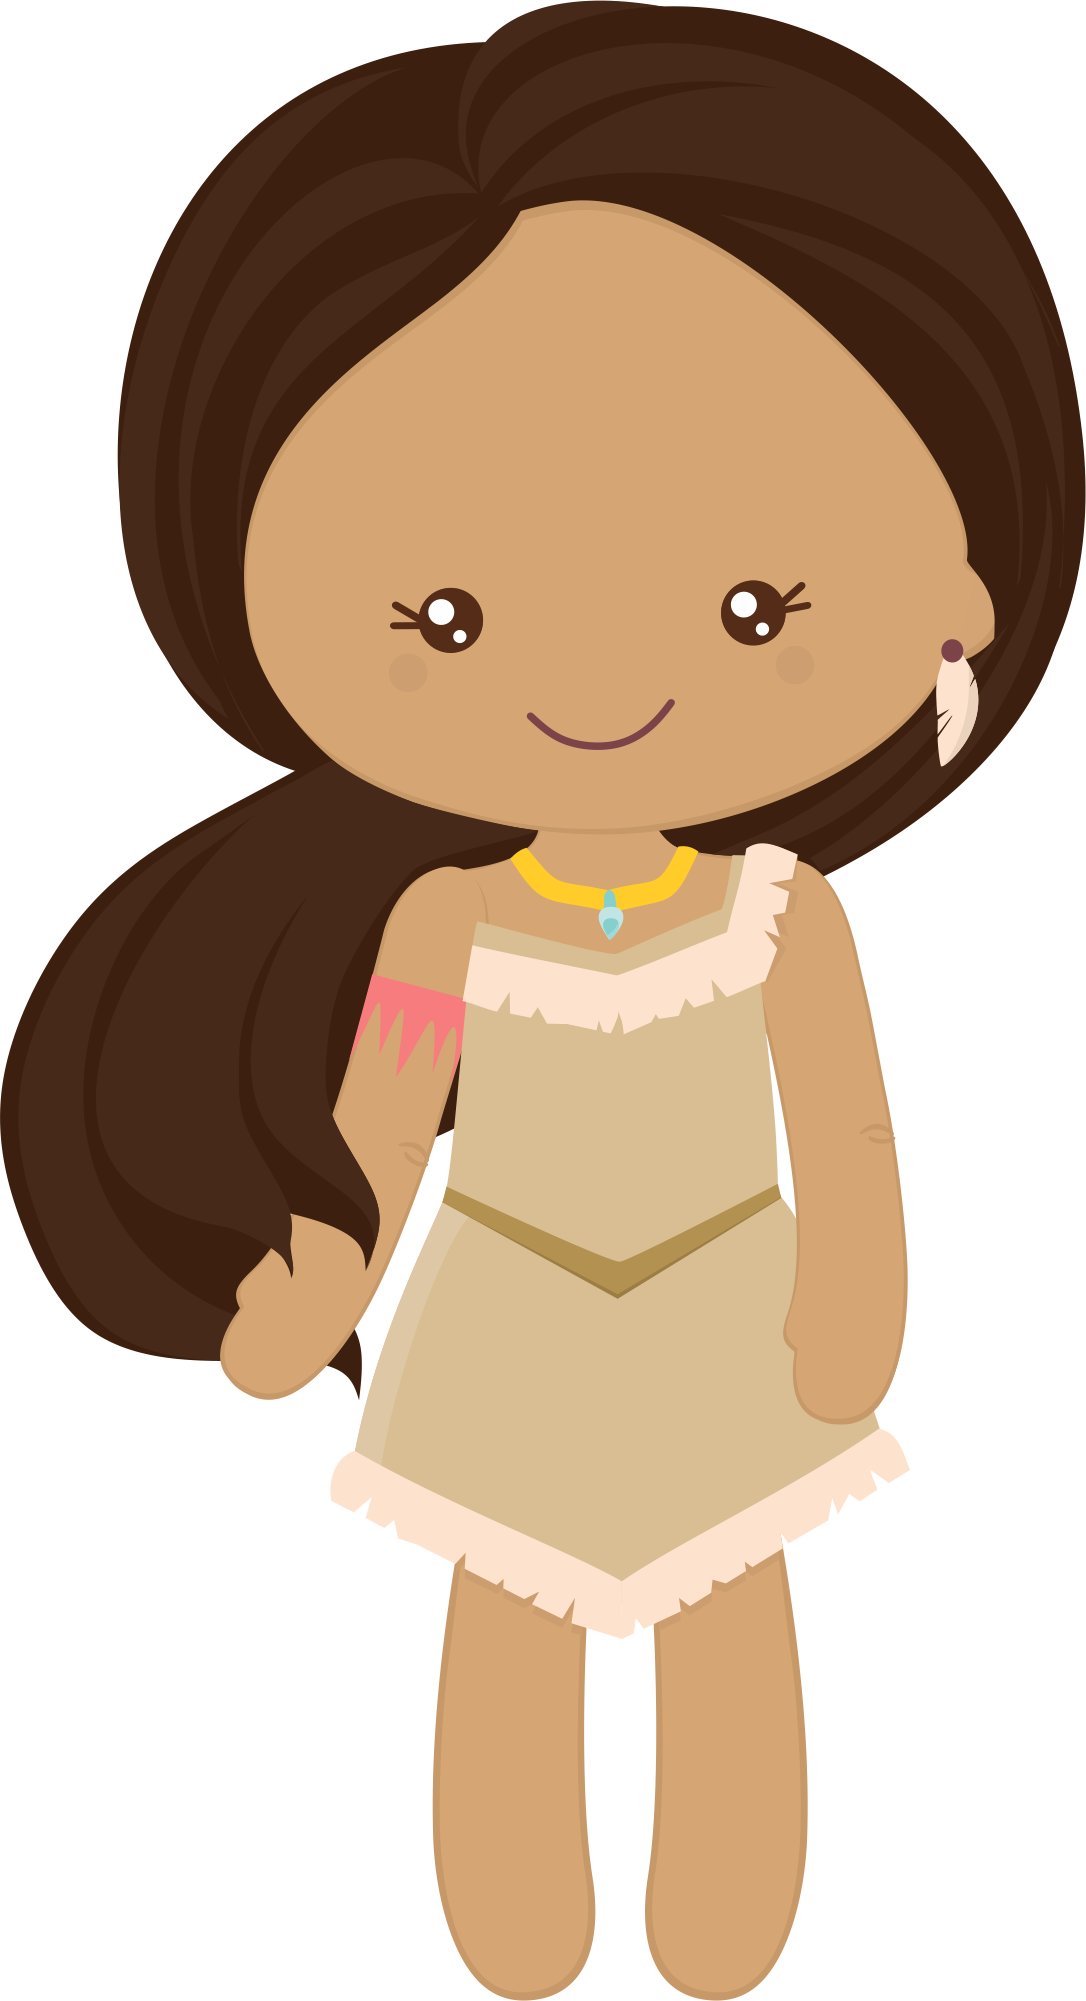 Pocahontas princess grafos littleprincess. E clipart little